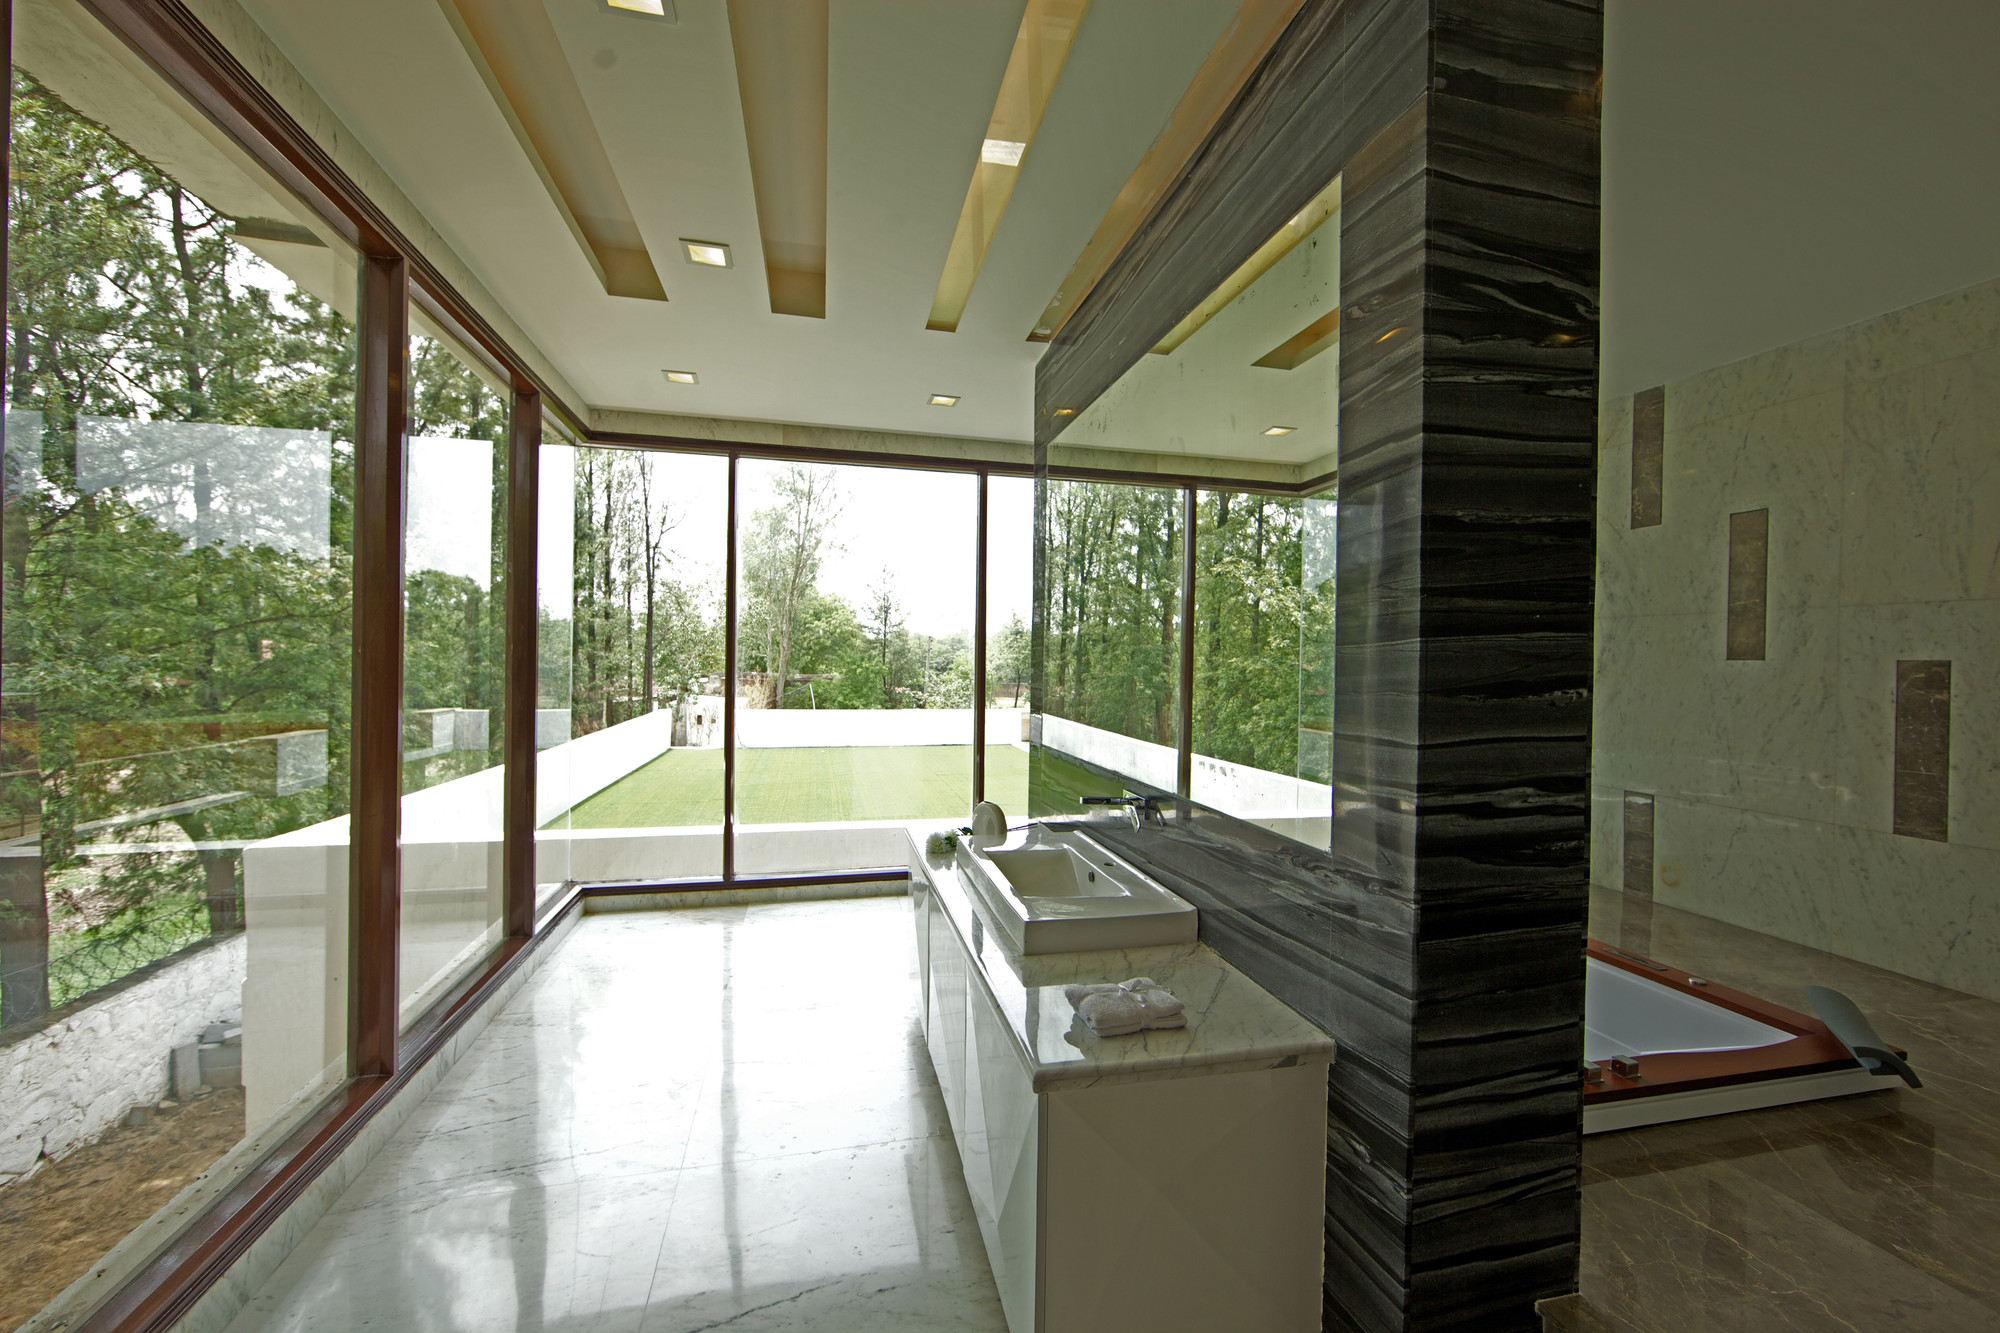 Gallery of sachdeva farmhouse spaces architects ka 11 for Spaces architects safdarjung